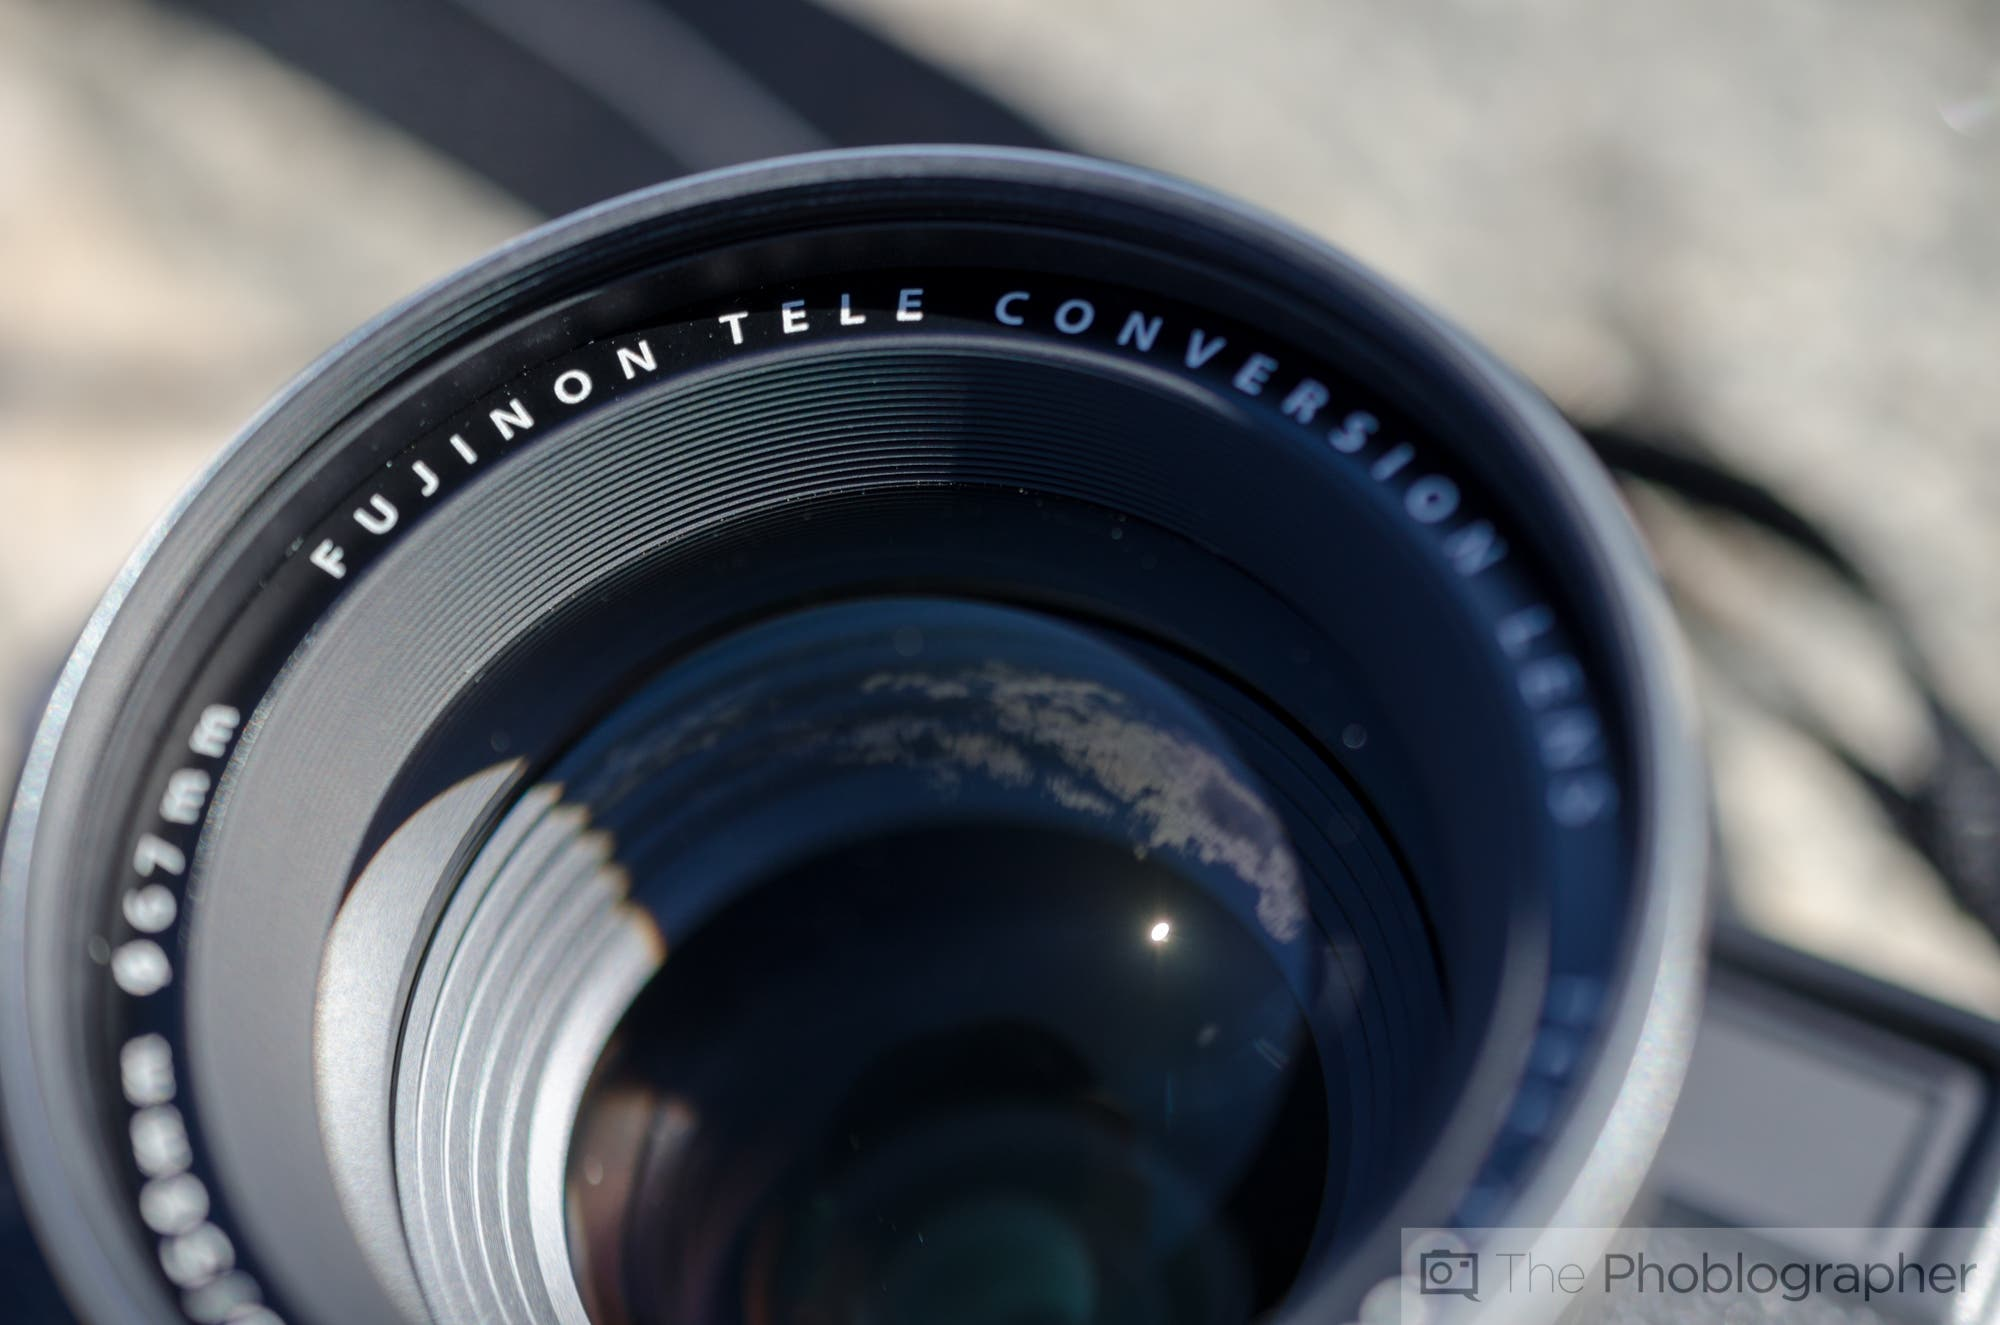 Review: Fujifilm TCL-X100 Teleconvertor For X100s/X100